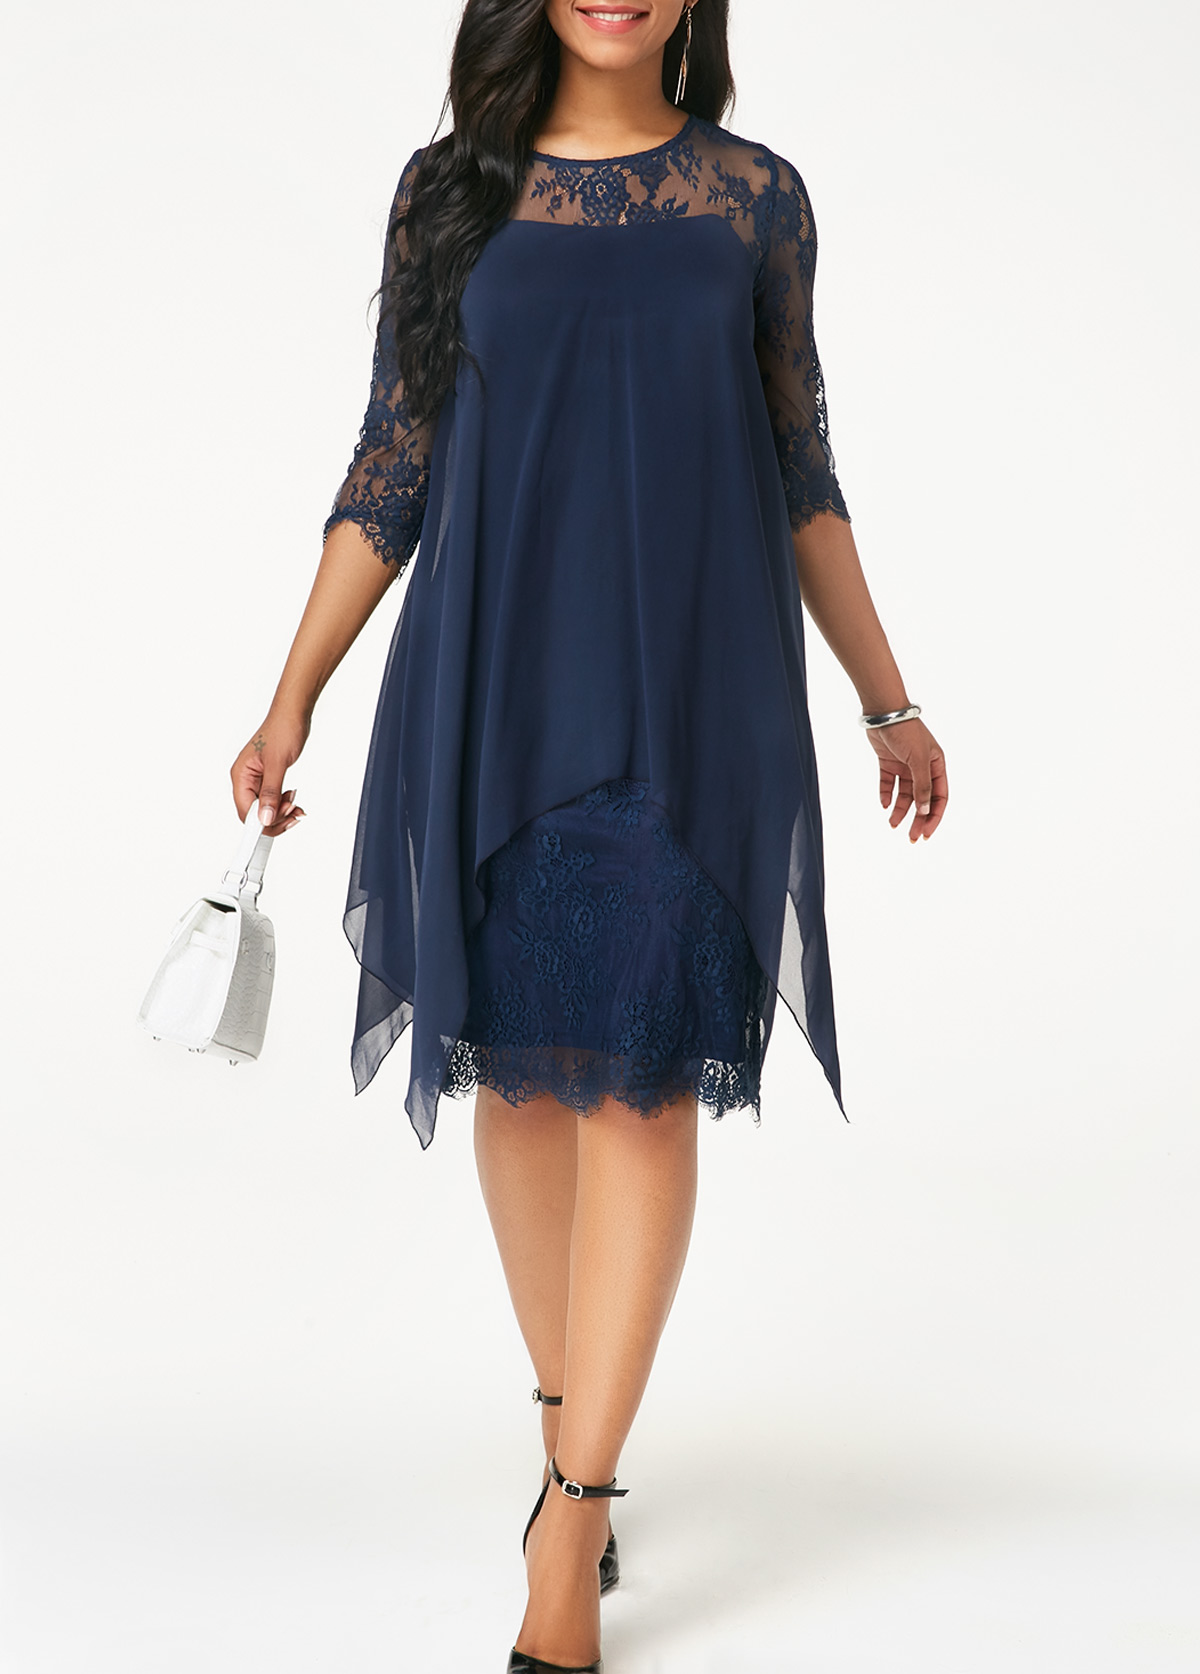 Navy Blue Three Quarter Sleeve Chiffon Overlay Lace Dress